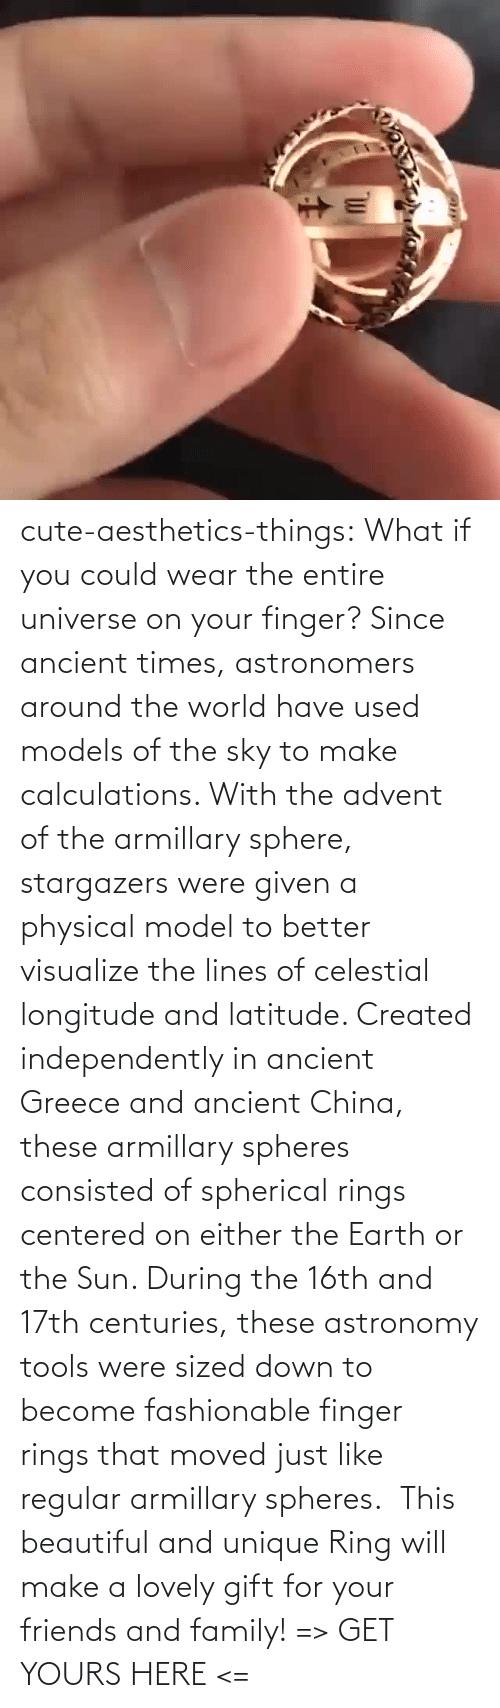 Moved: cute-aesthetics-things: What if you could wear the entire universe on your finger? Since ancient times, astronomers around the world have used models of the sky to make calculations. With the advent of the armillary sphere, stargazers were given a physical model to better visualize the lines of celestial longitude and latitude. Created independently in ancient Greece and ancient China, these armillary spheres consisted of spherical rings centered on either the Earth or the Sun. During the 16th and 17th centuries, these astronomy tools were sized down to become fashionable finger rings that moved just like regular armillary spheres.  This beautiful and unique Ring will make a lovely gift for your friends and family! => GET YOURS HERE <=